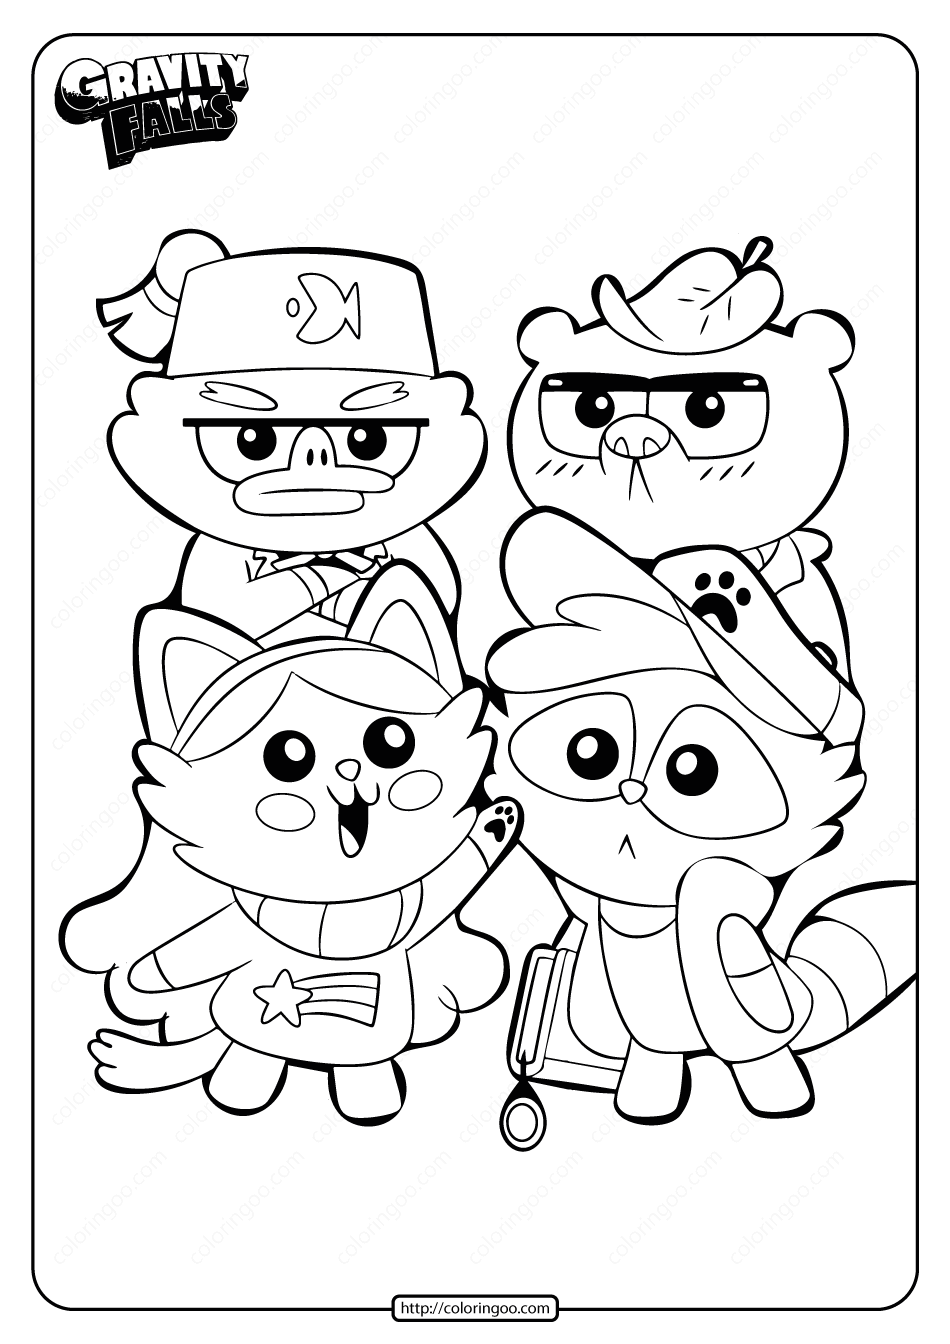 Printable Gravity Falls Cute Animals Coloring Page 1